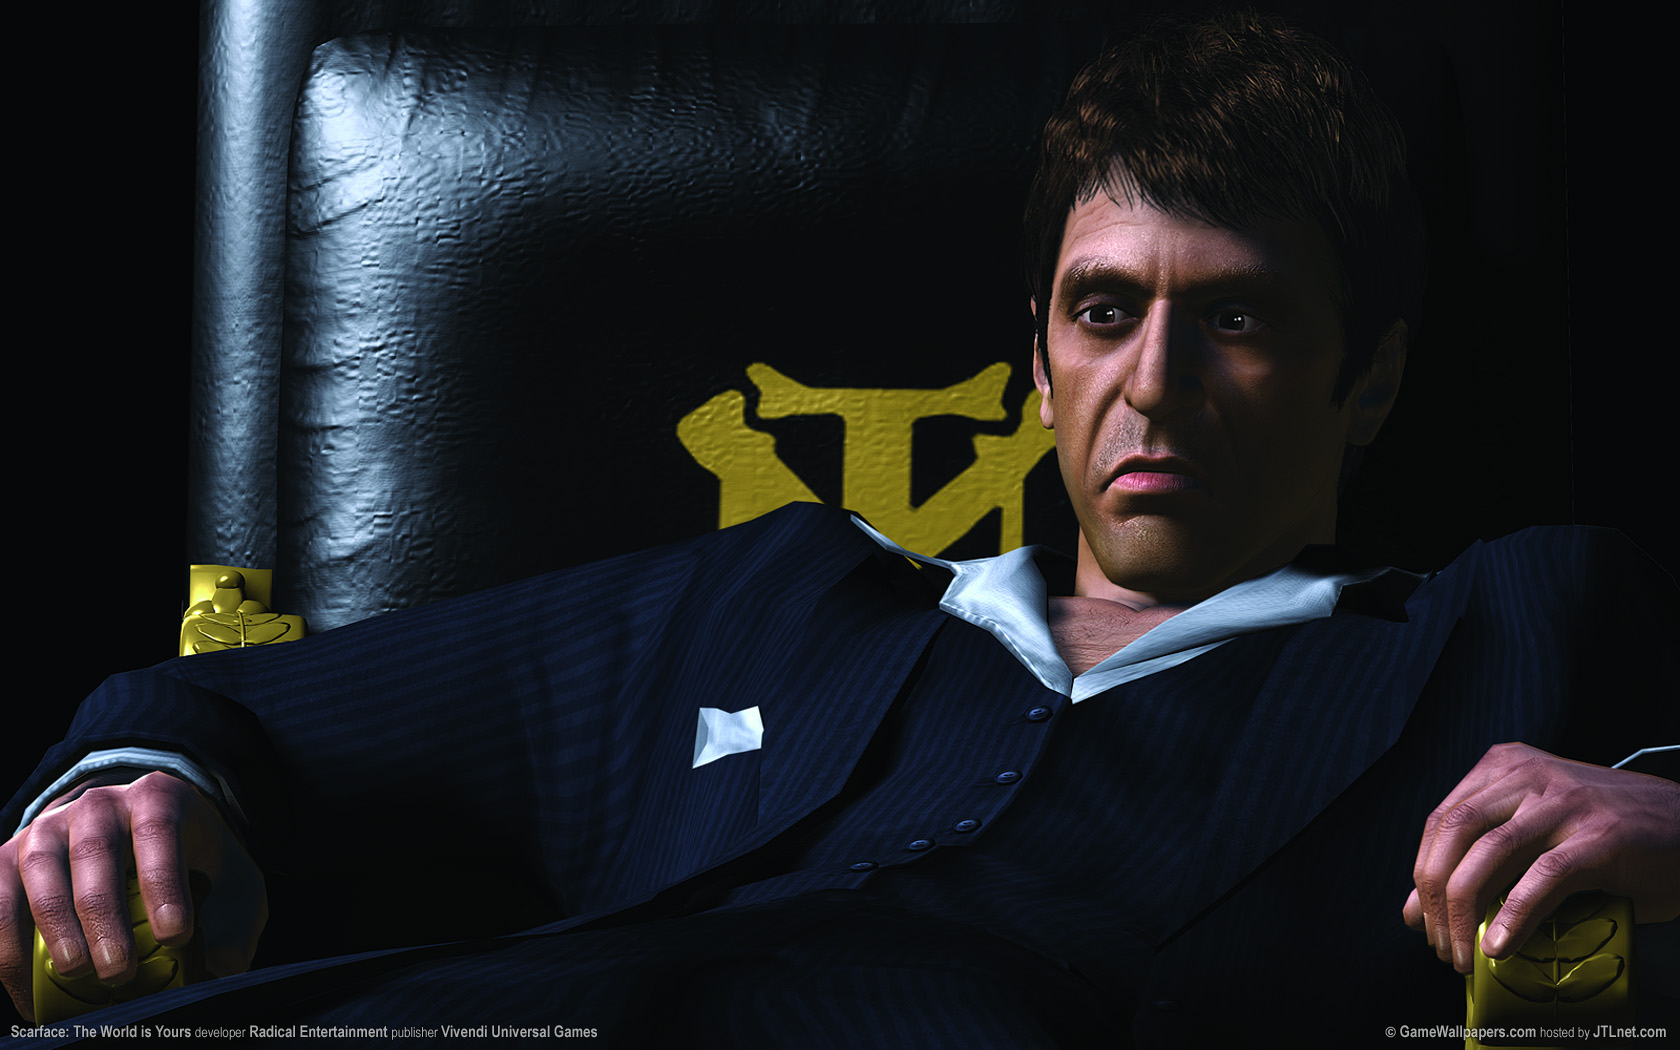 Scarface Quotes Wallpapers 1680x1050 Scarface The World Is Yours Desktop Pc And Mac